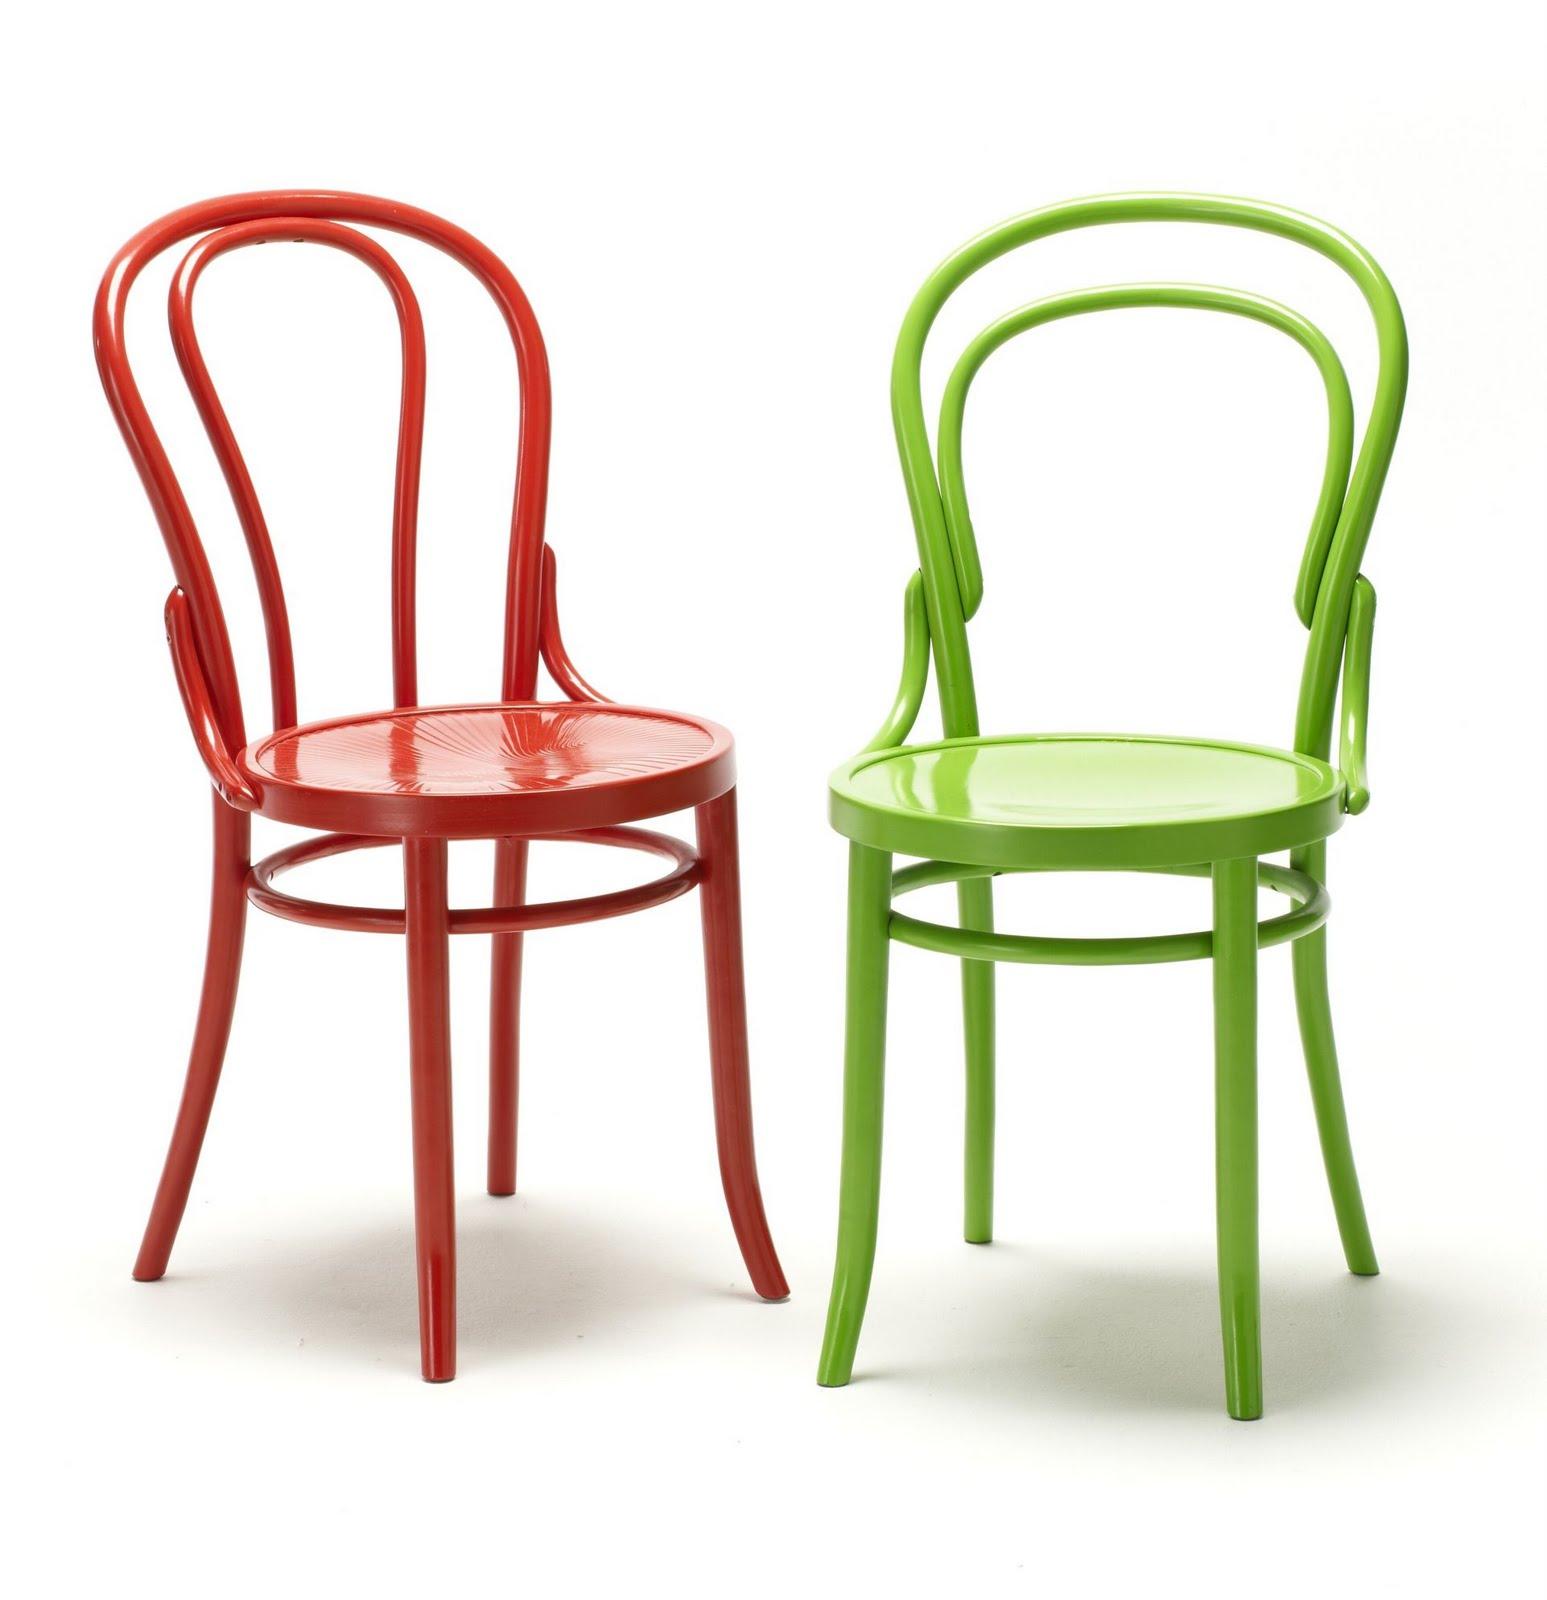 Amazing-design-Bentwood-chairs-with-comfortable-design-in-two-colors-green-and-red-for-the-home